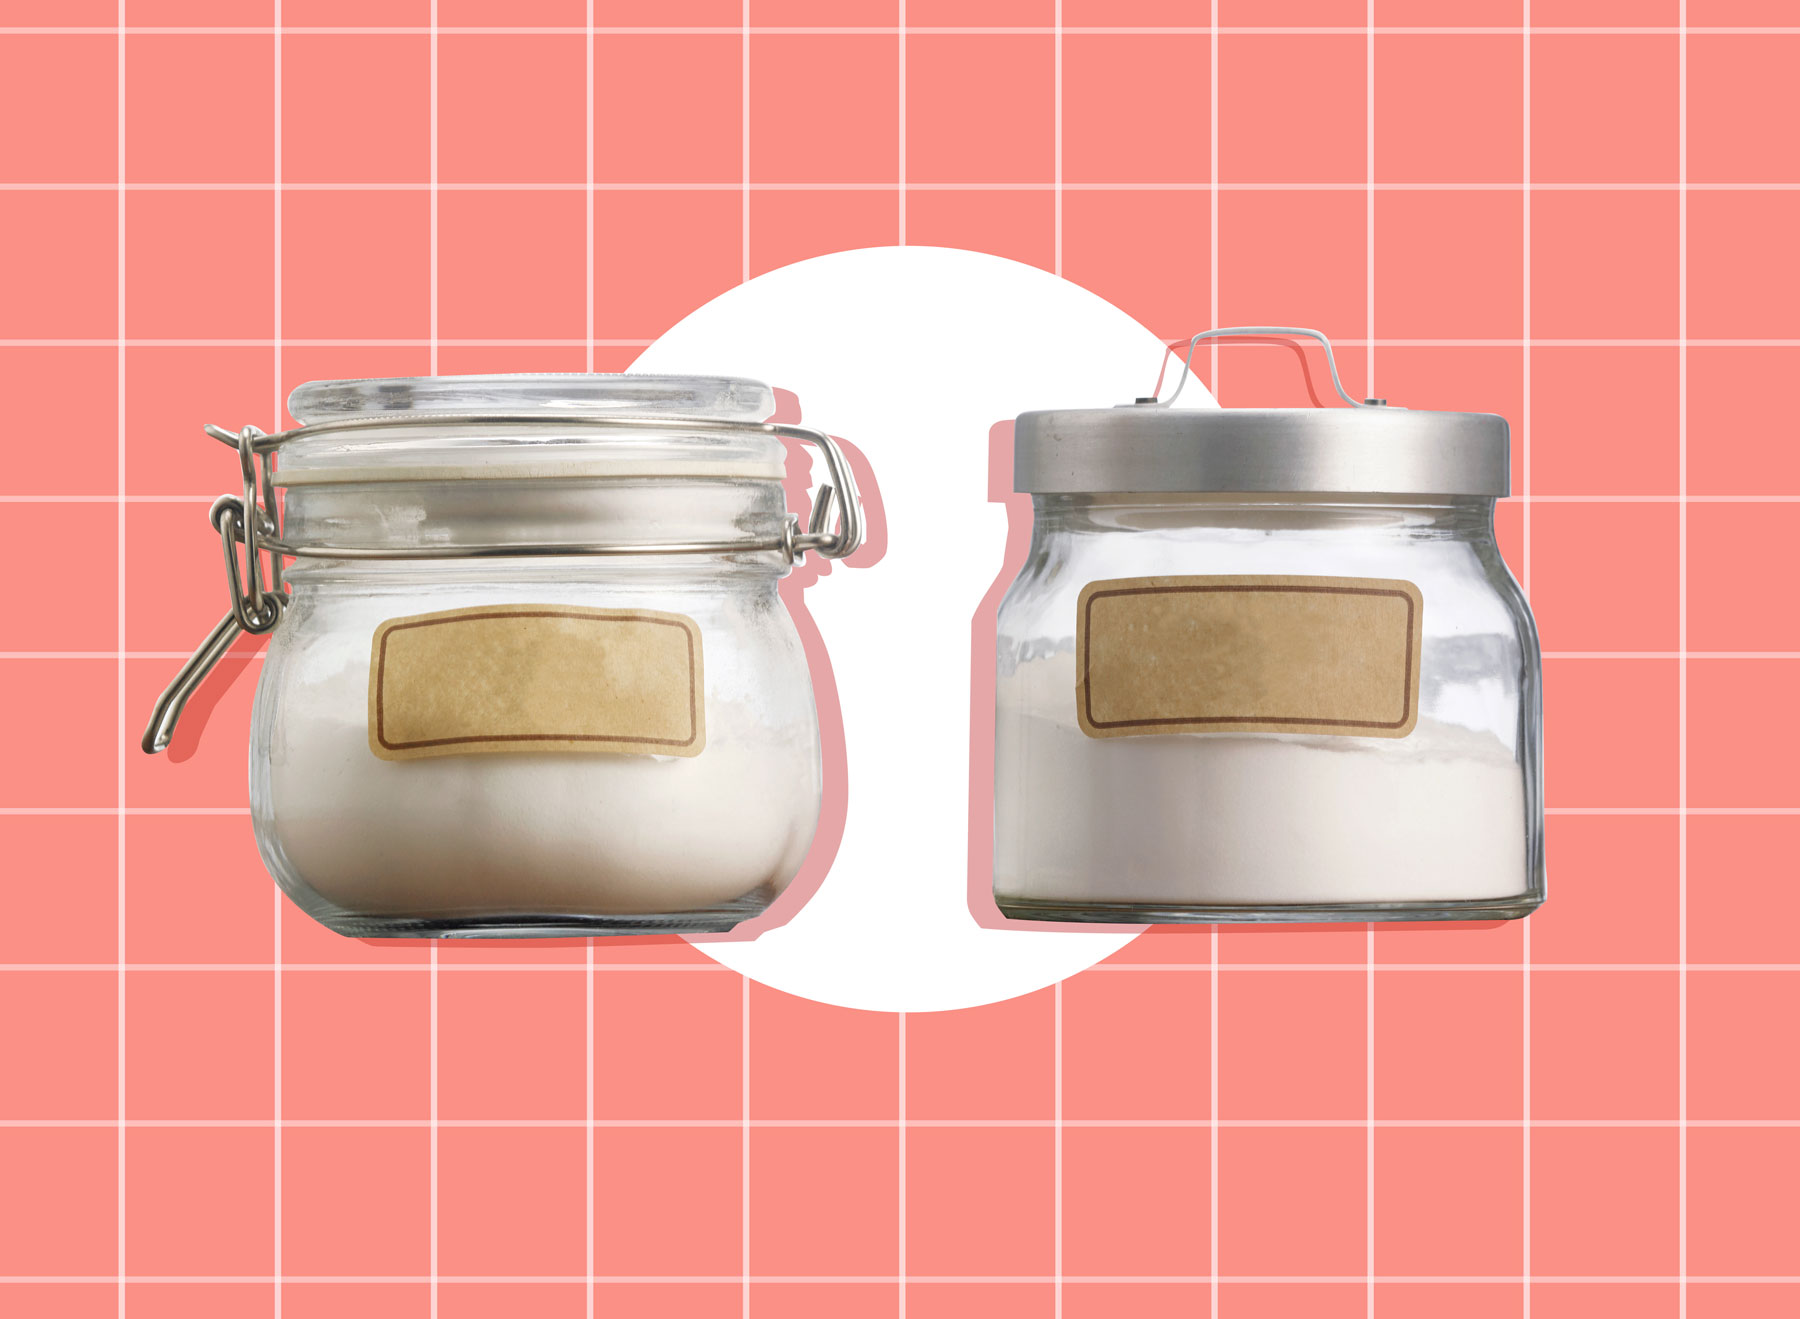 The Difference Between Baking Soda and Baking Powder, So You Can Finally Stop Confusing Them